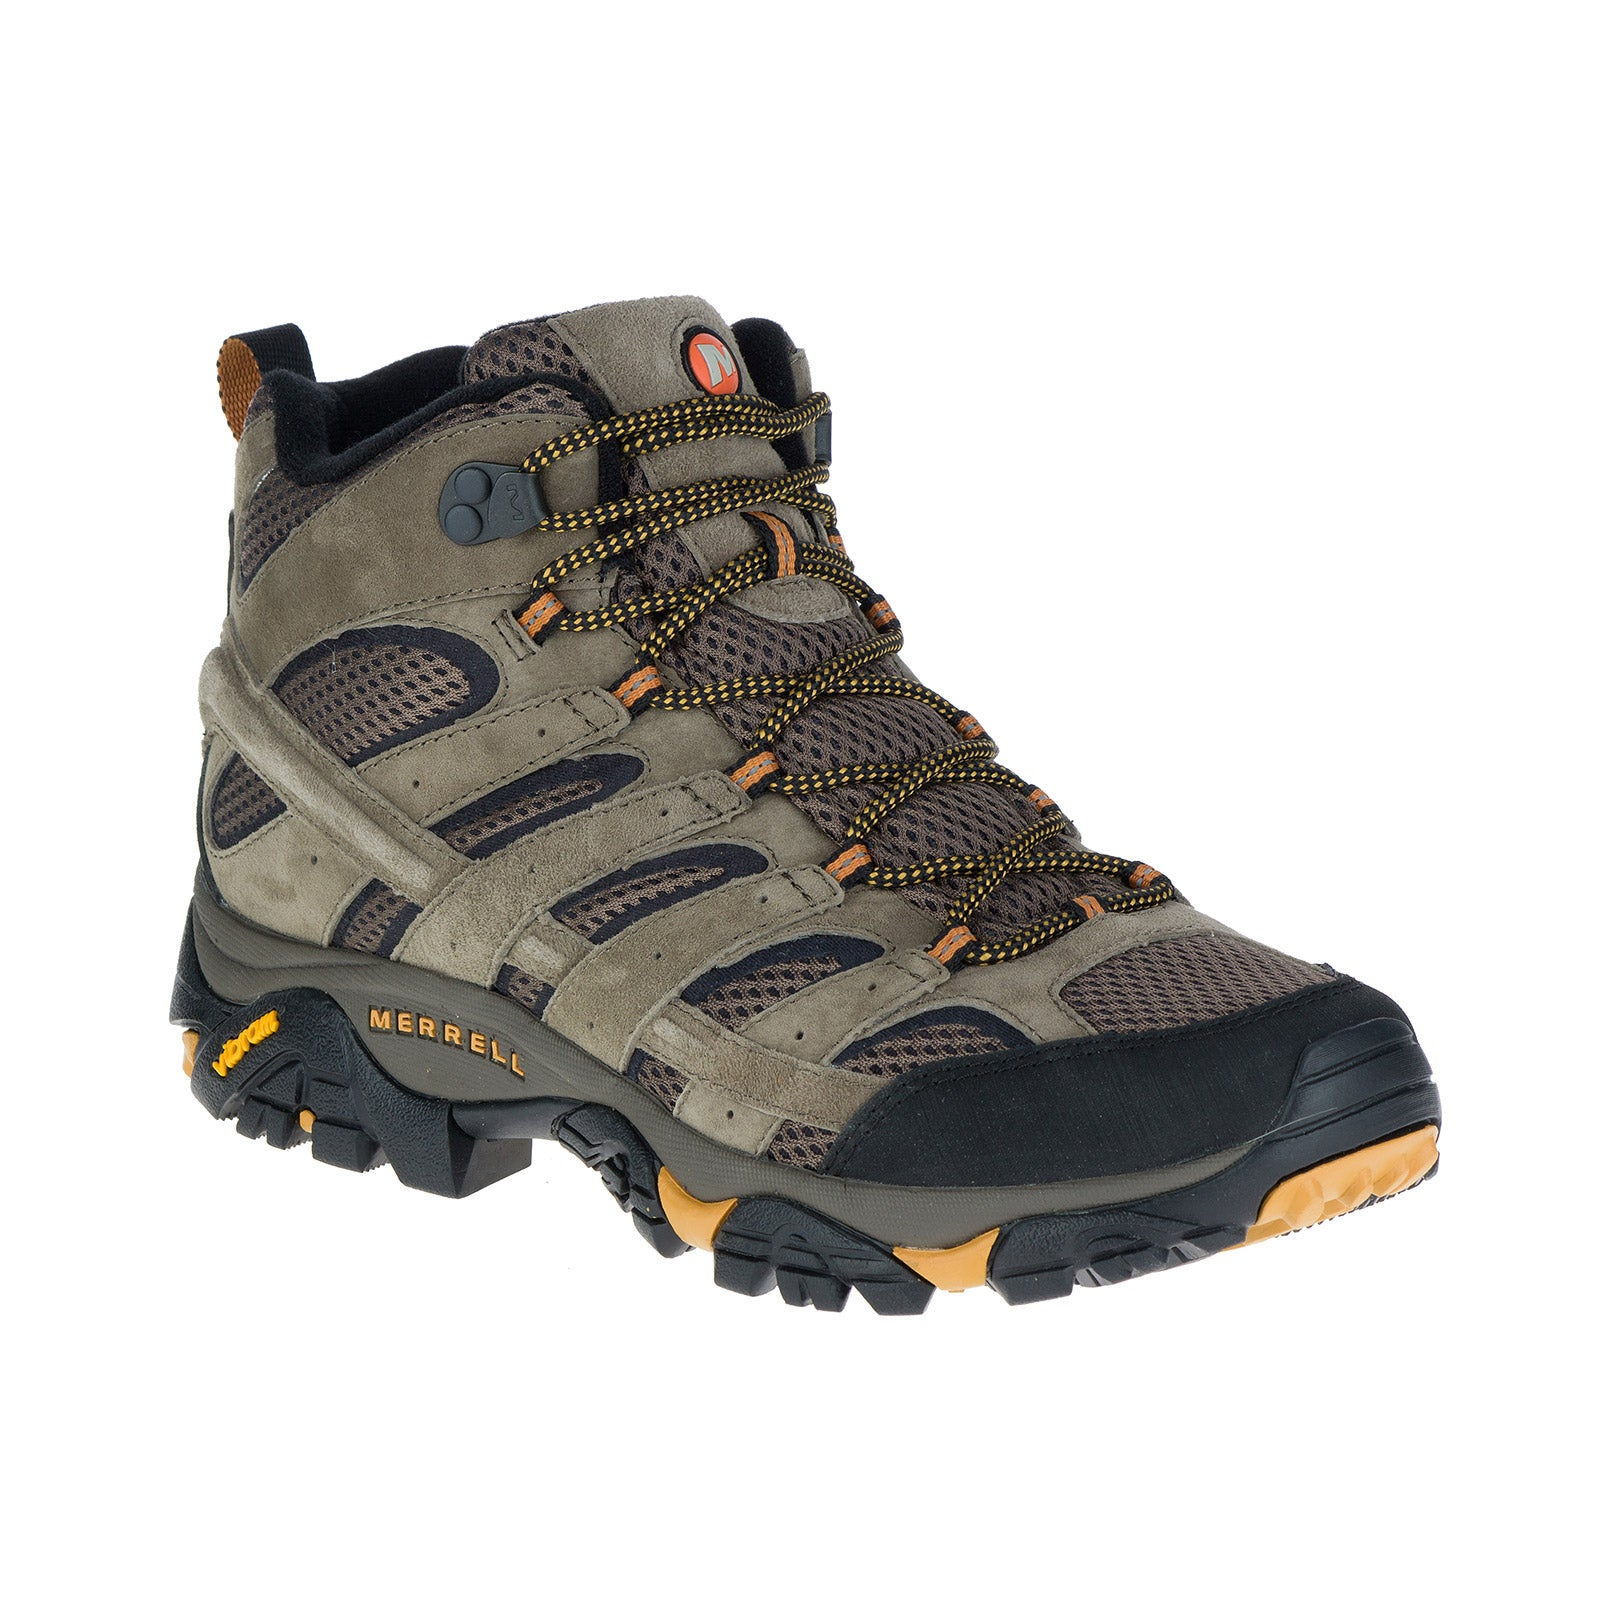 merrell moab 2 ventilator hiking boot mens three quarter view in color brown with orange accents